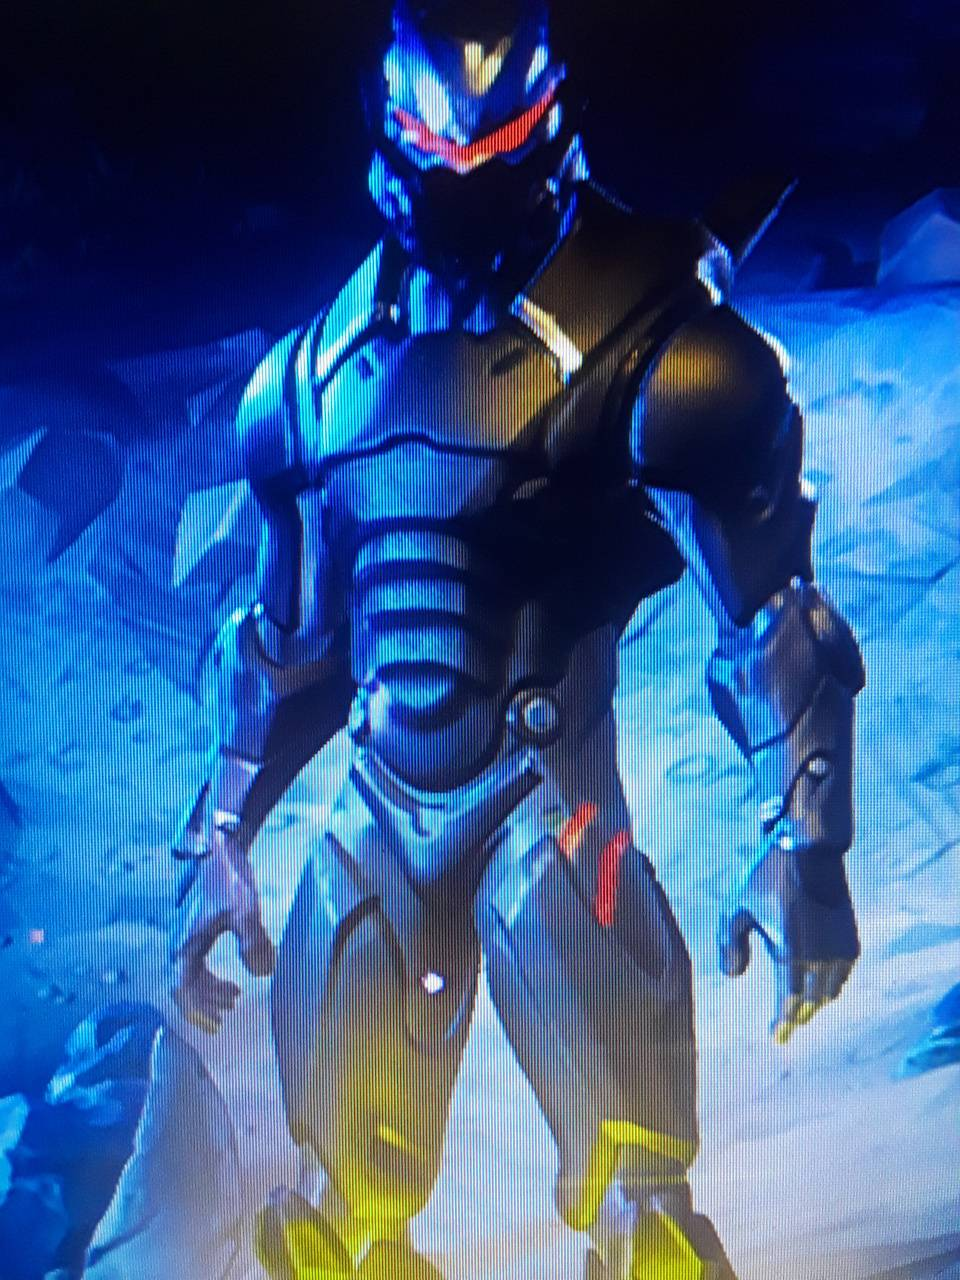 Omega Wallpaper By Fortnitegodslayer 63 Free On Zedge